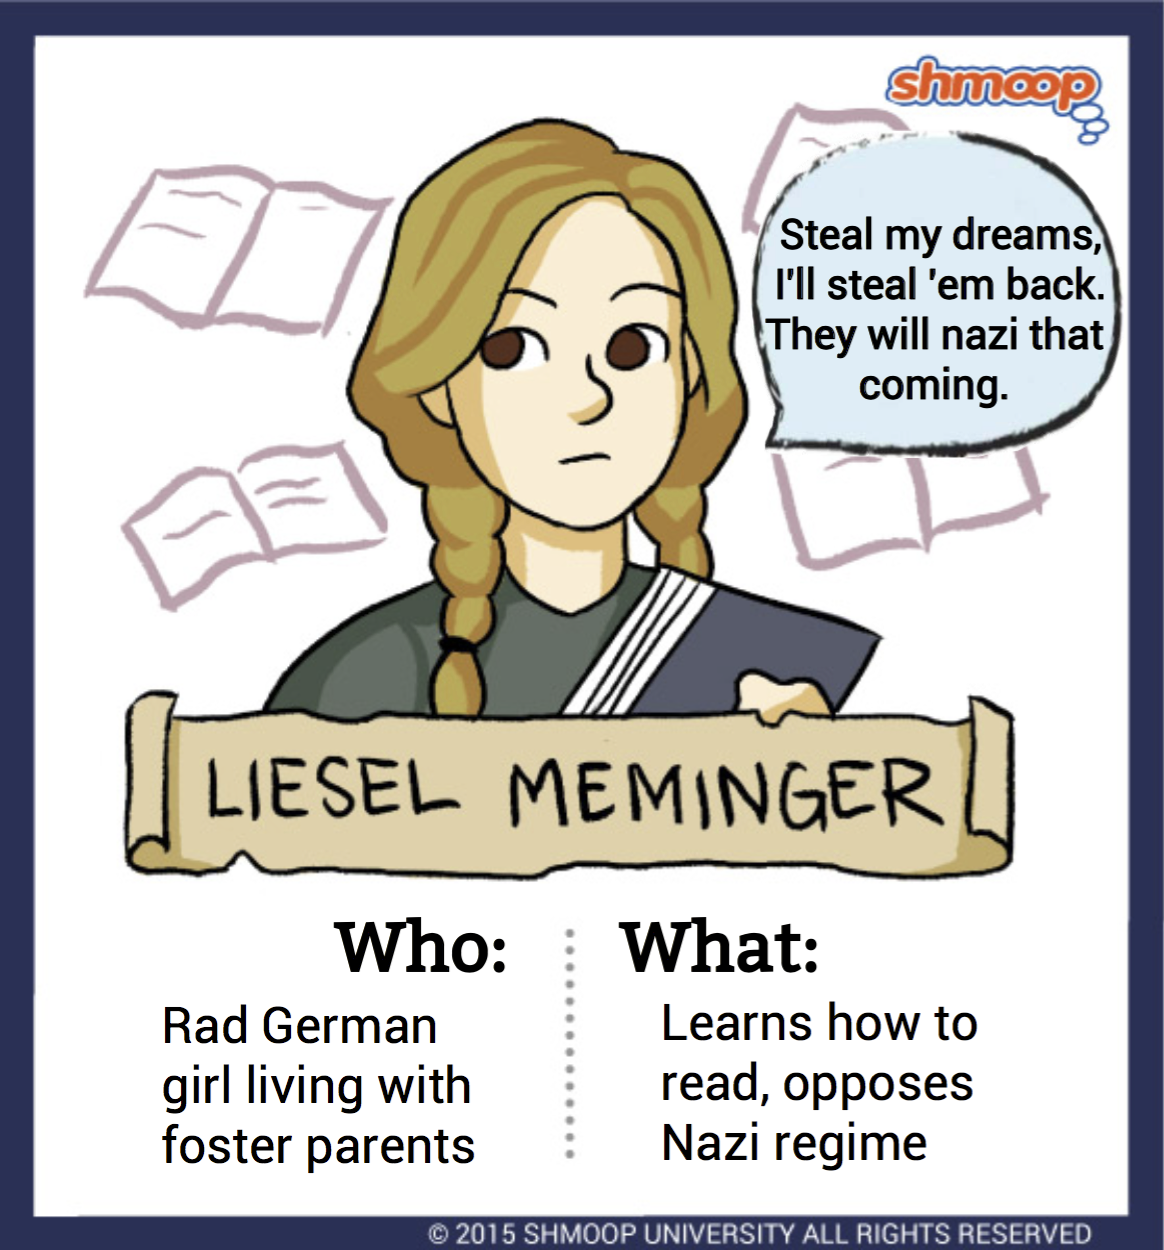 essay about liesel meminger Engels book thief essay outline of my essay paragraph 1 thesis statement and introduction paragraph 2 talents of liesel meminger paragraph 3 talents of hans.